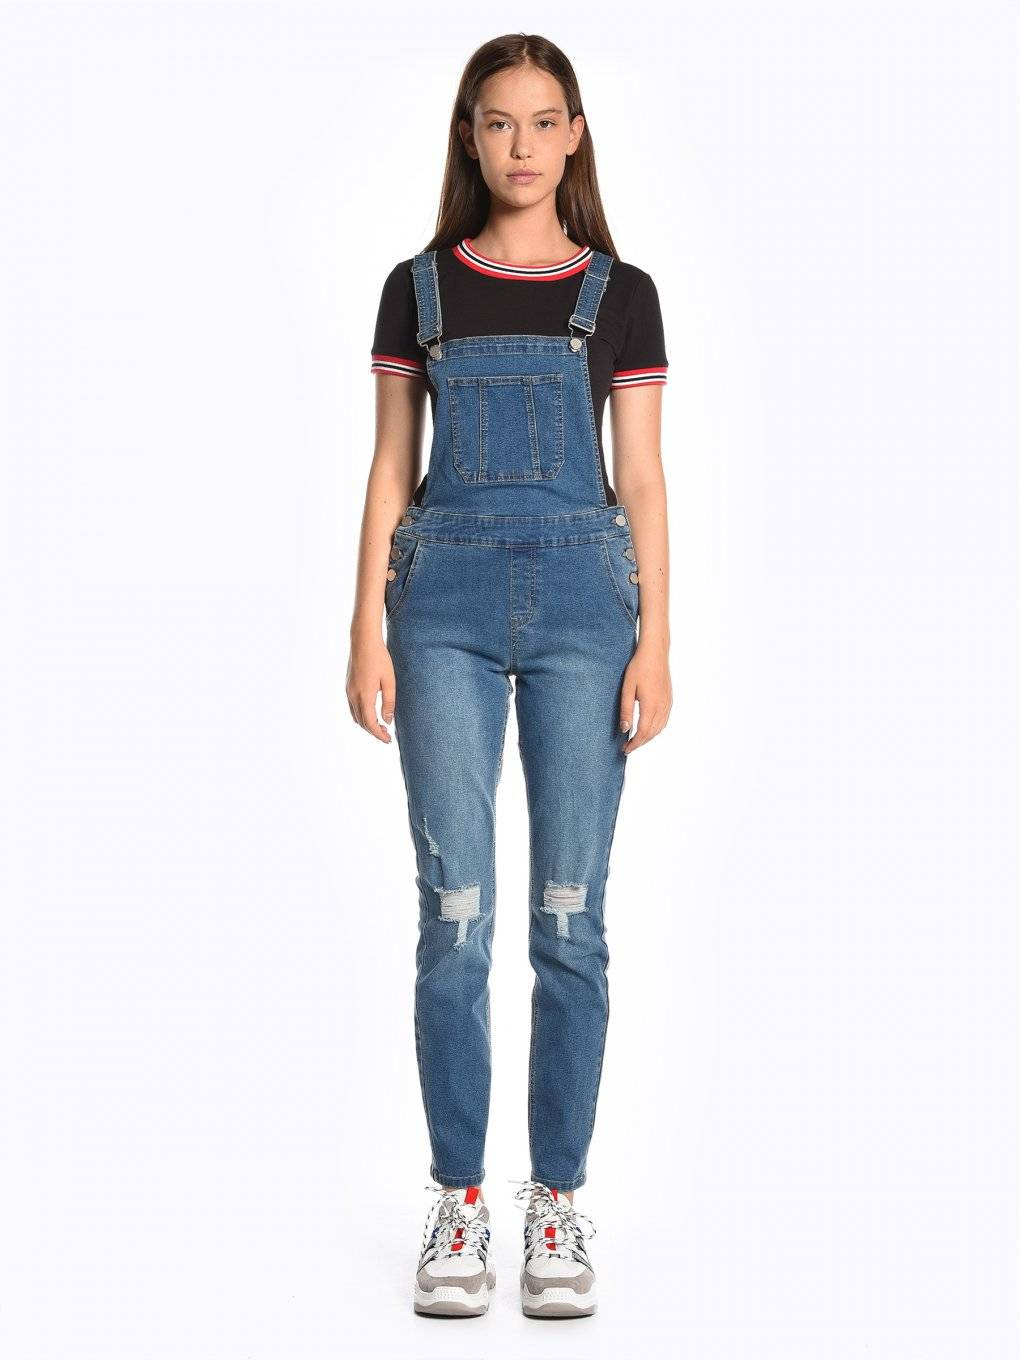 Dungaree jeans